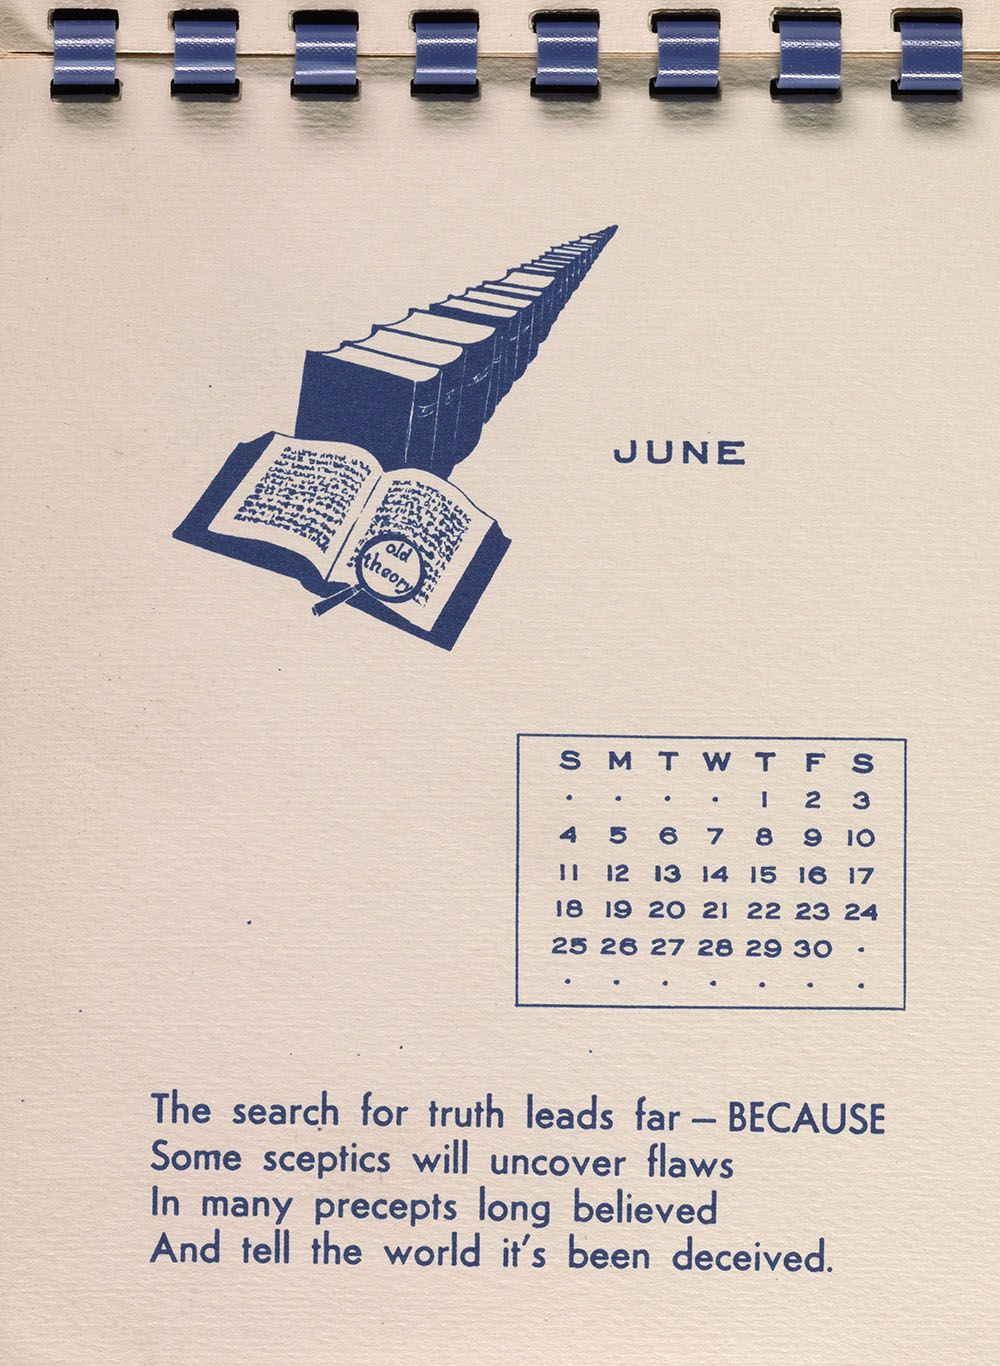 June 1950 selection from William Adam Delano holiday card